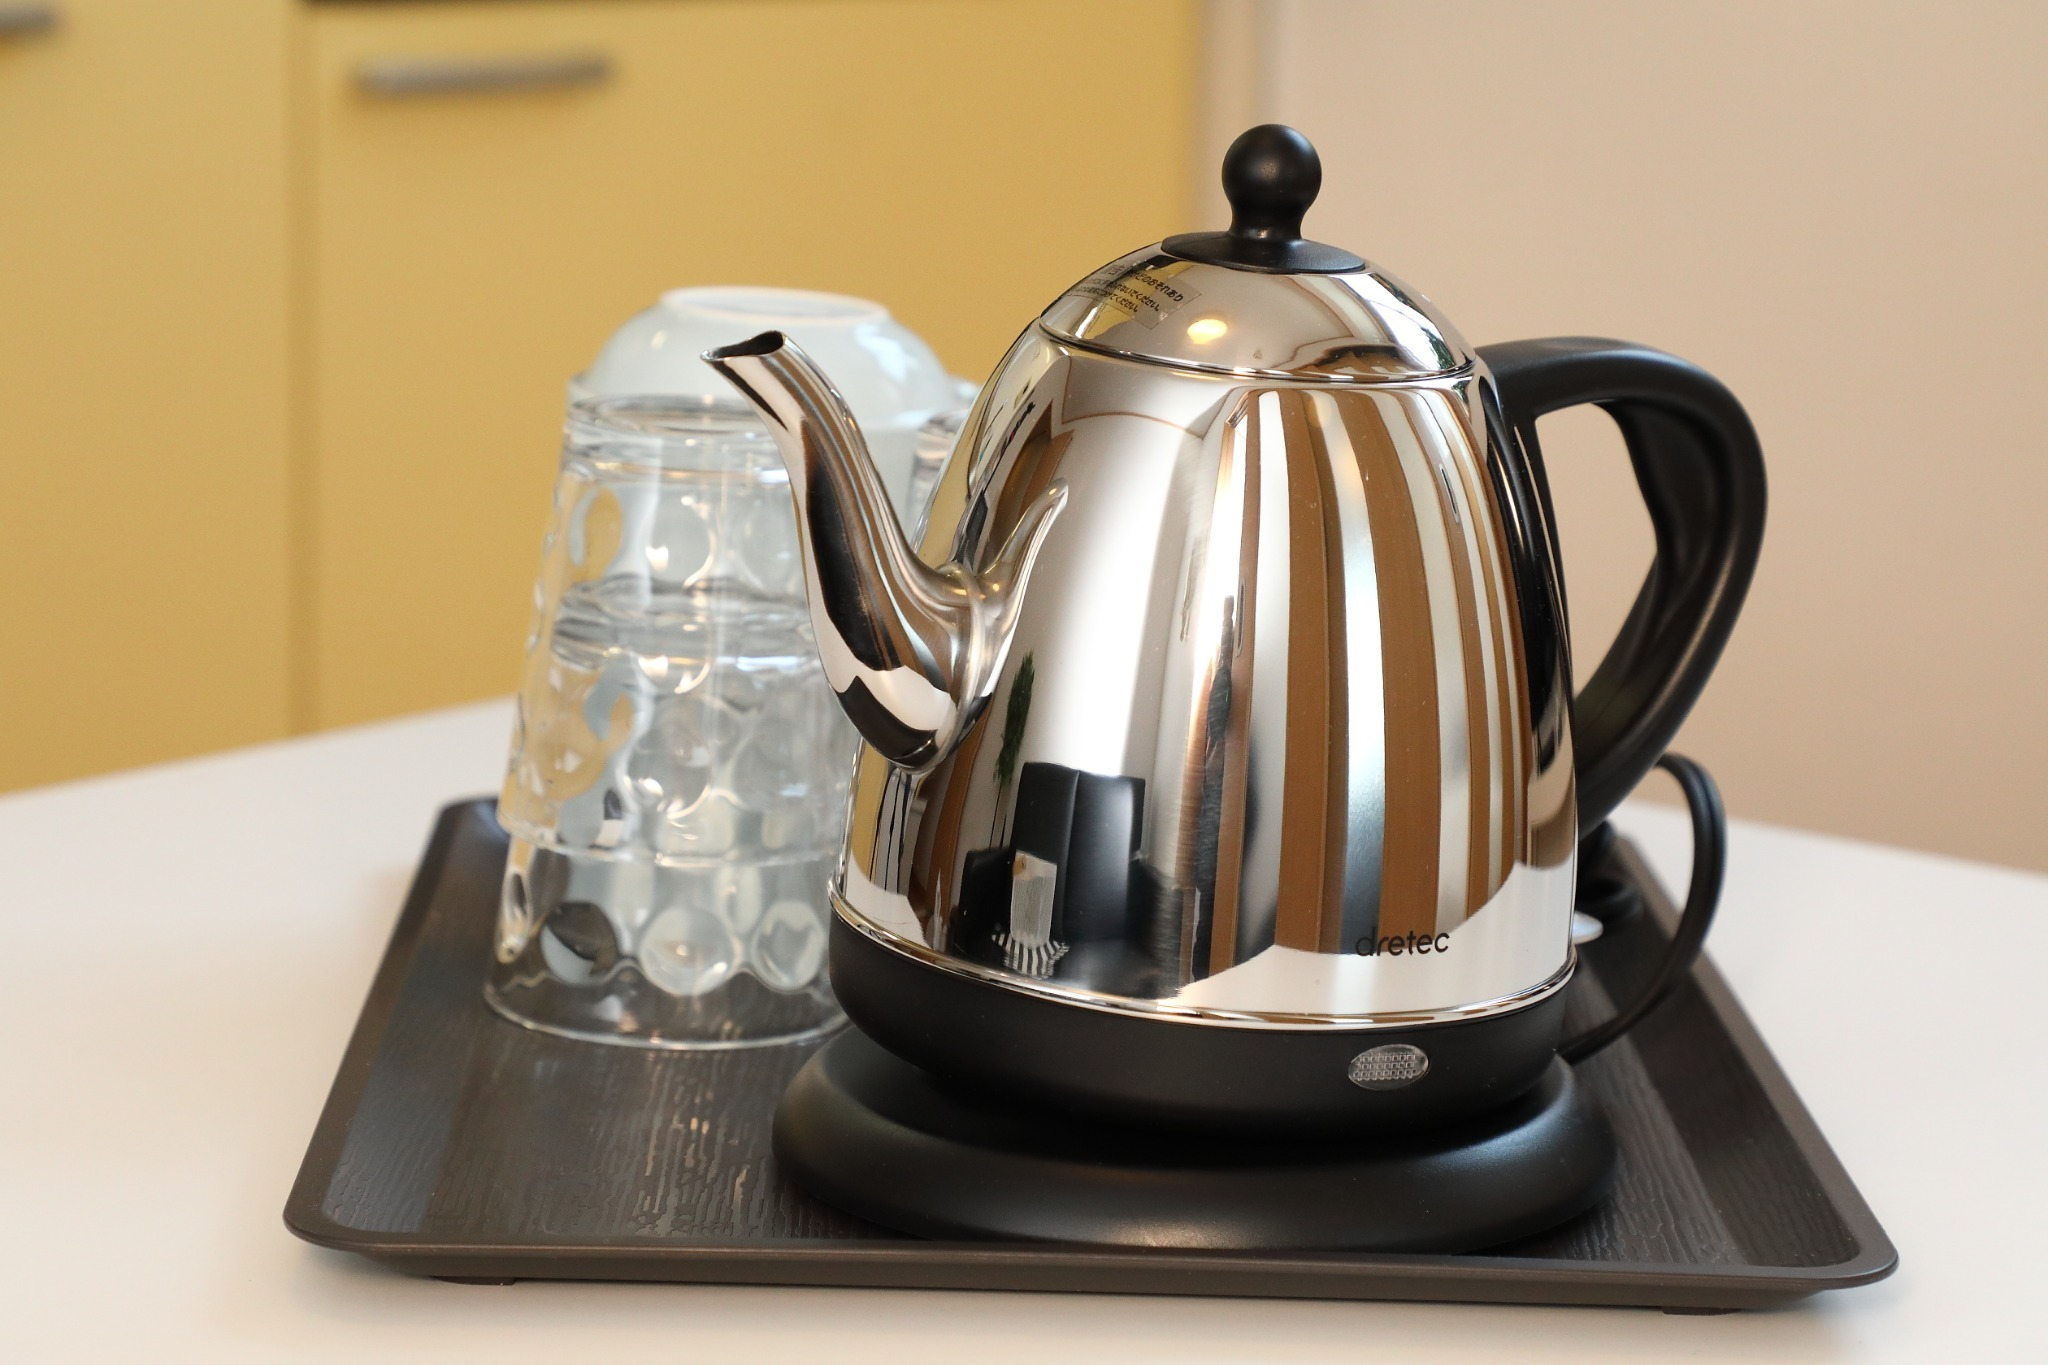 電気ケトル Electric kettle